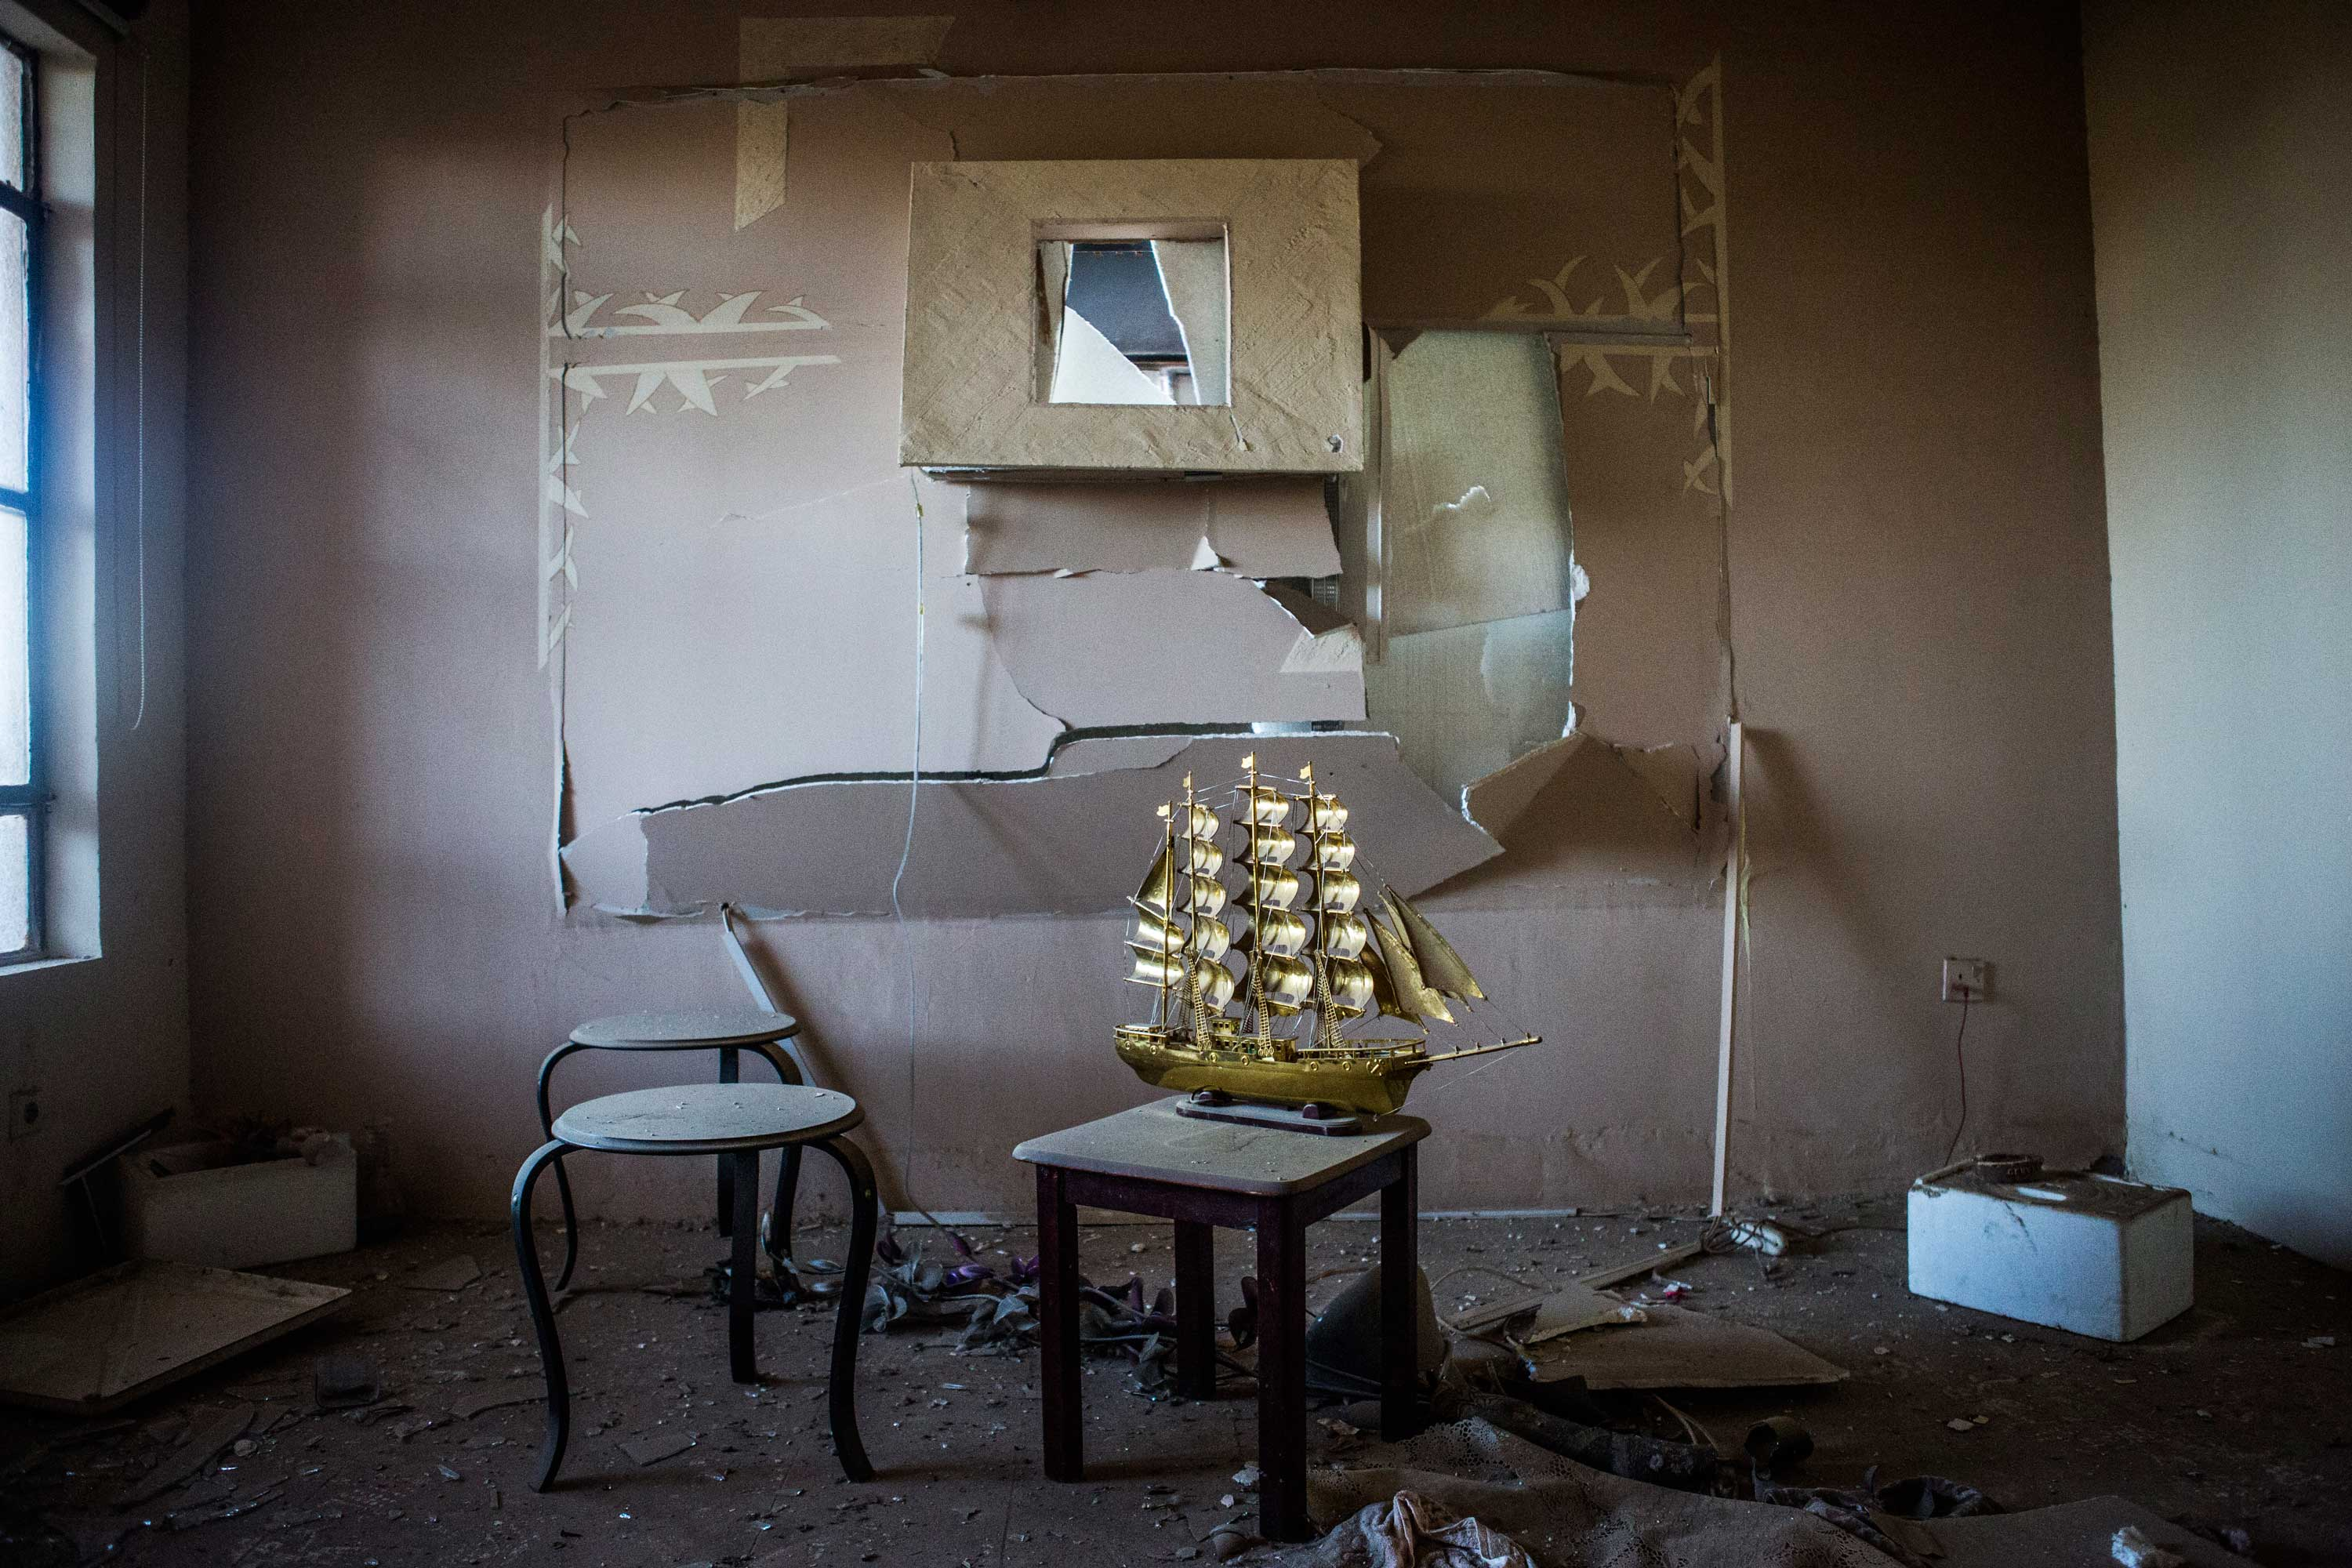 A caravel left intact in a living ransacked room.